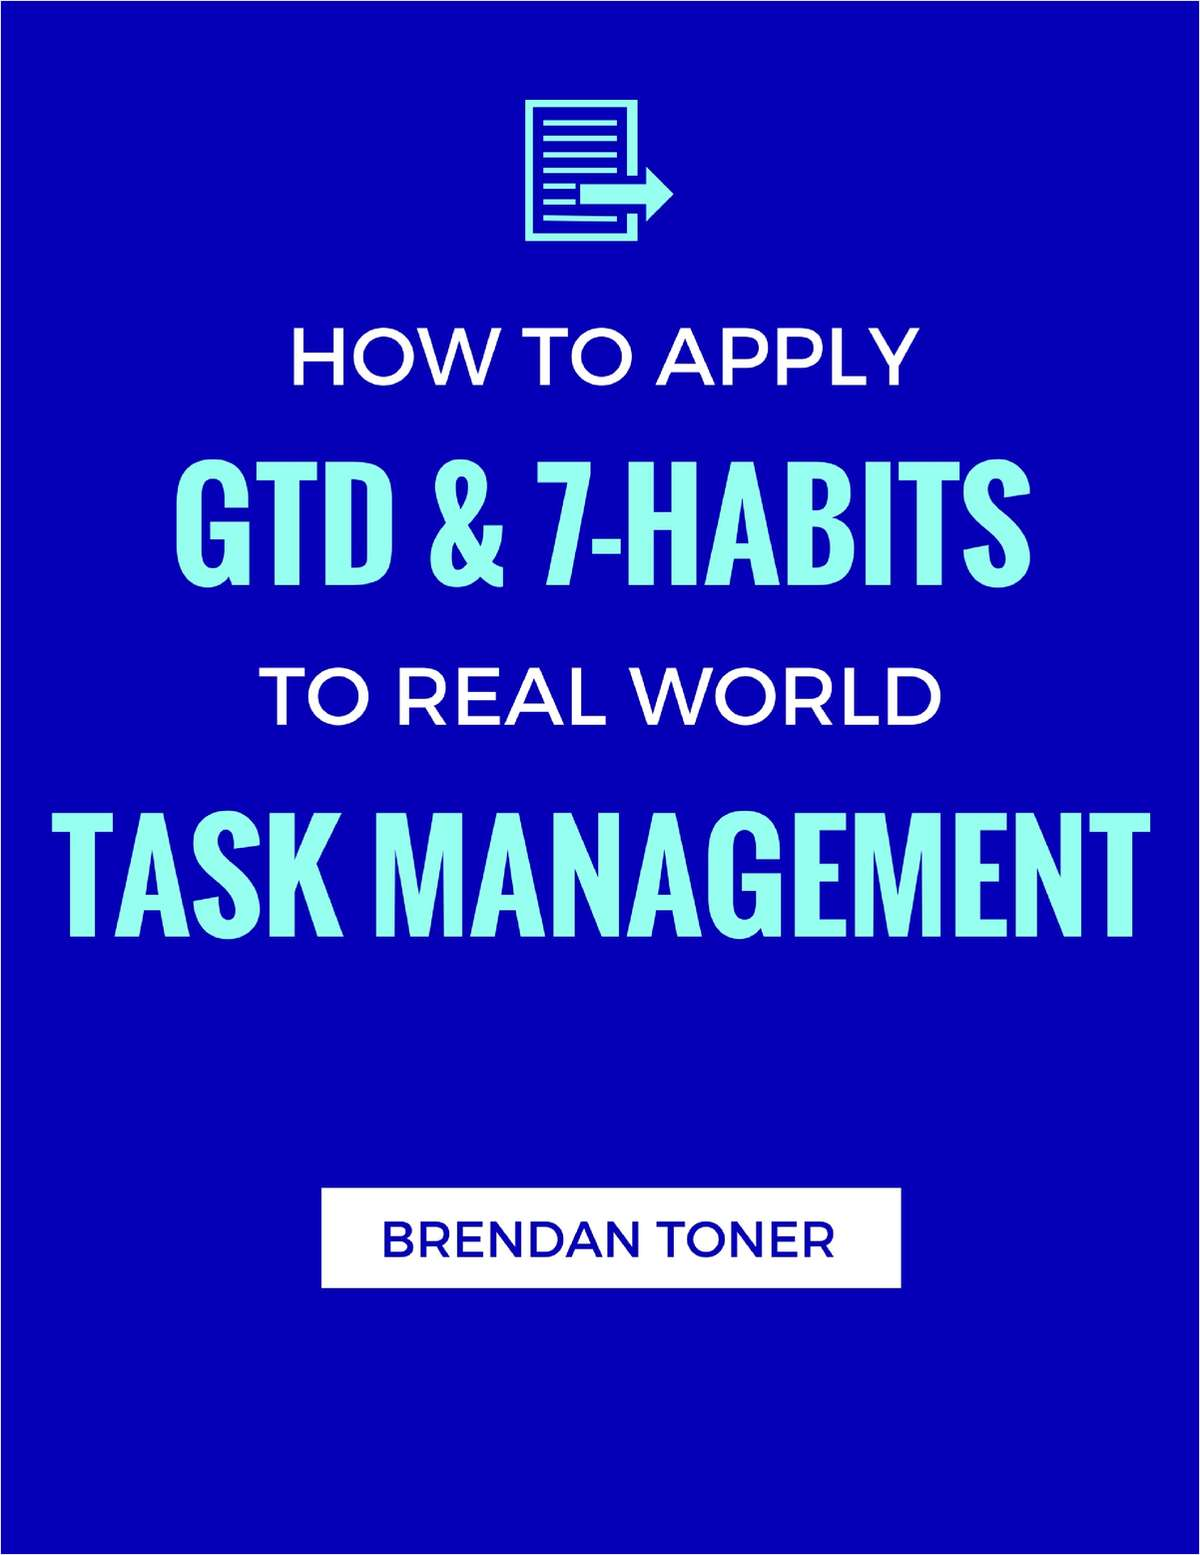 How to Apply GTD & 7-Habits to Real World Task Management